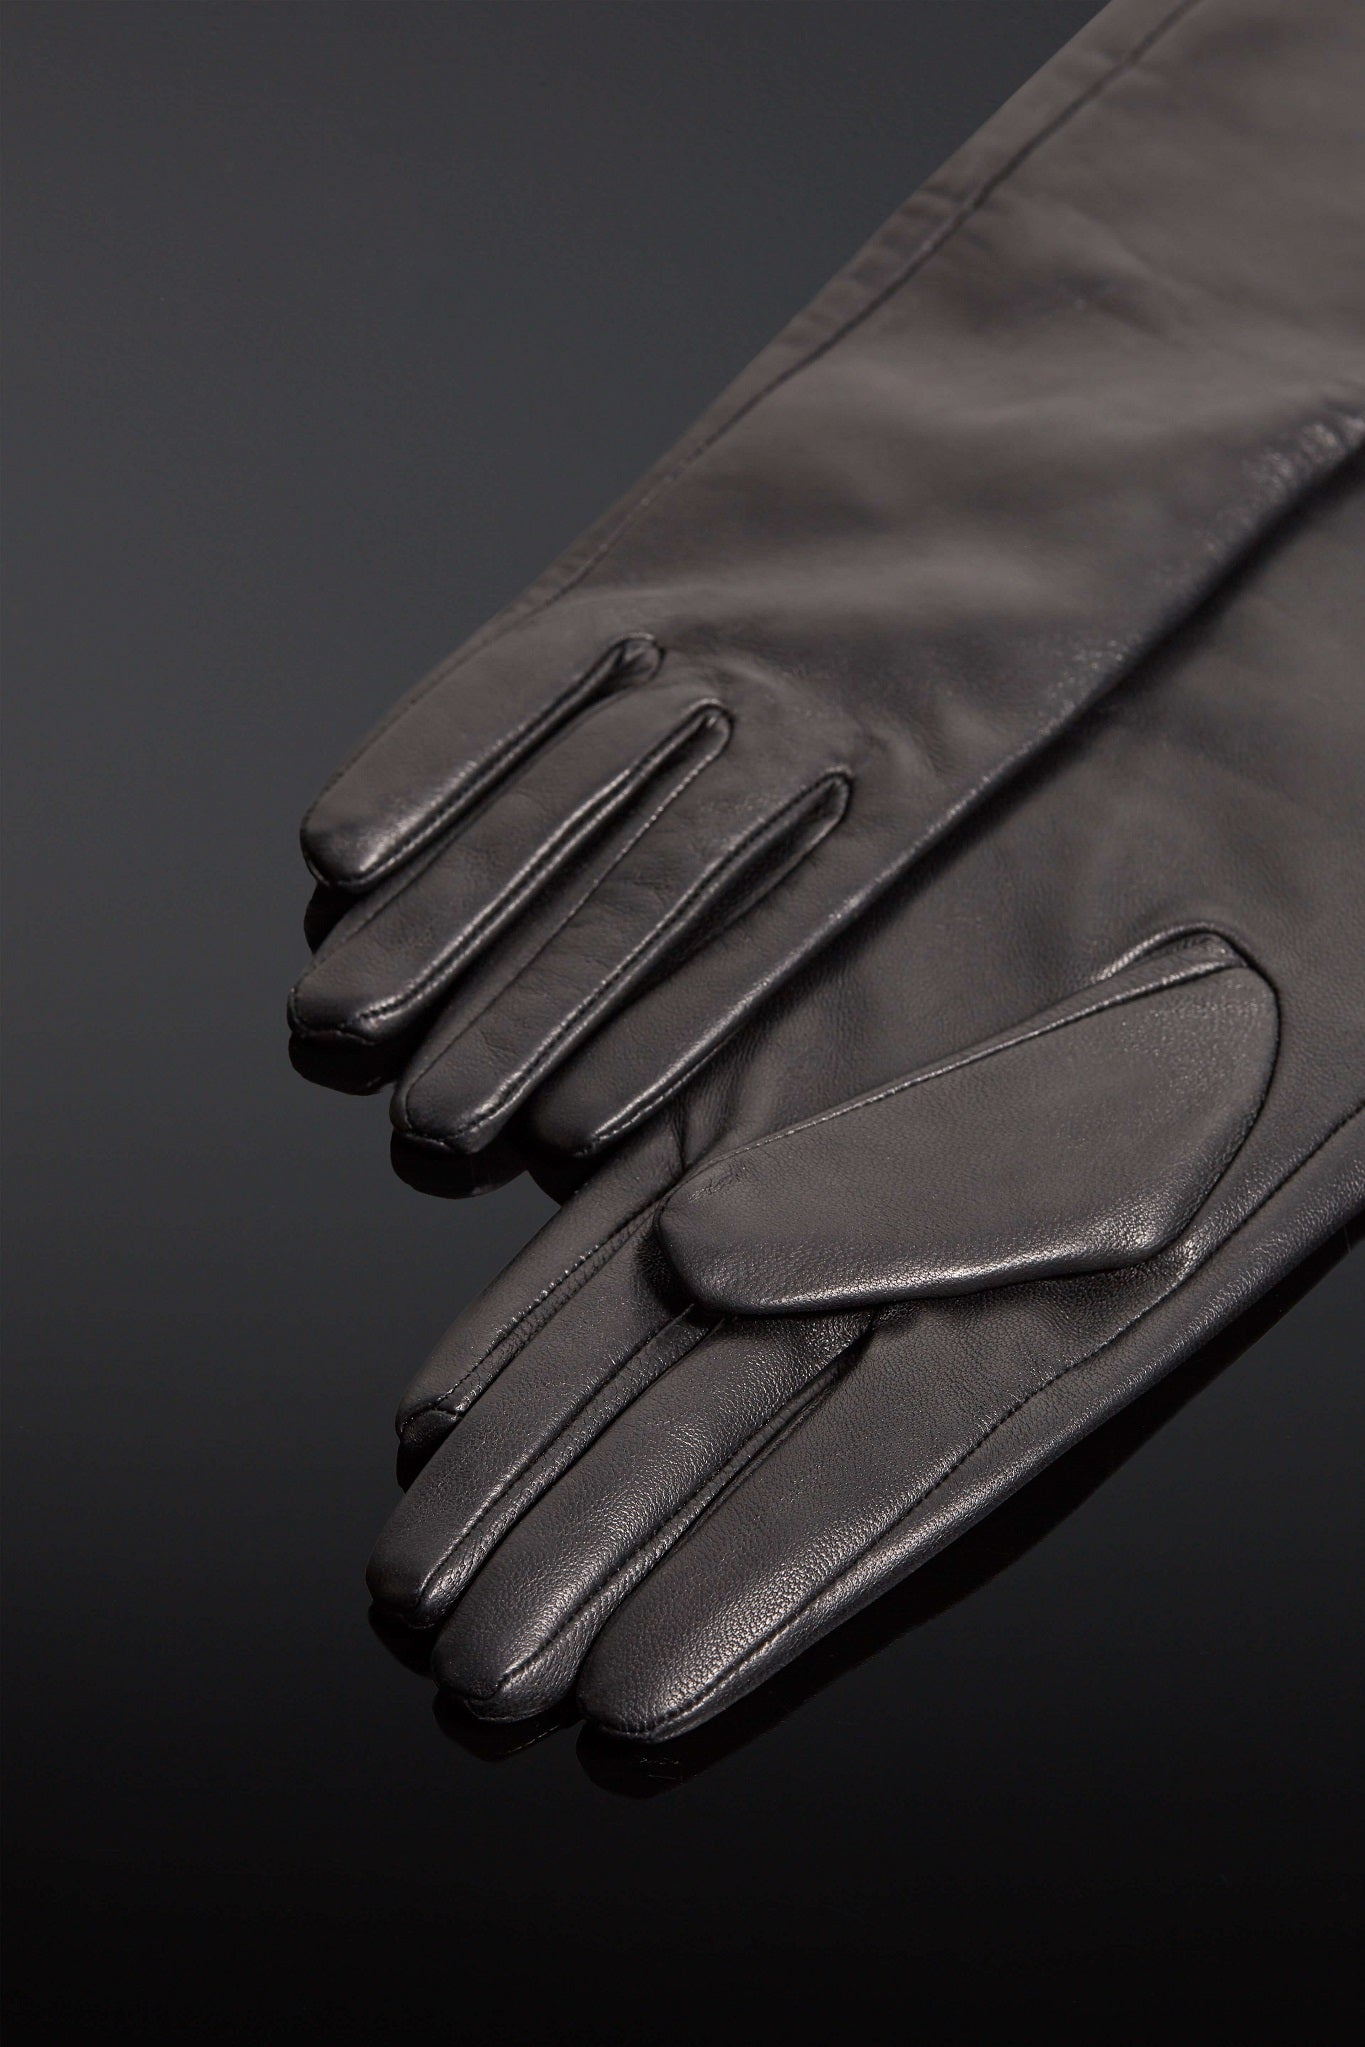 House of SXN Leather Sense Opera Gloves